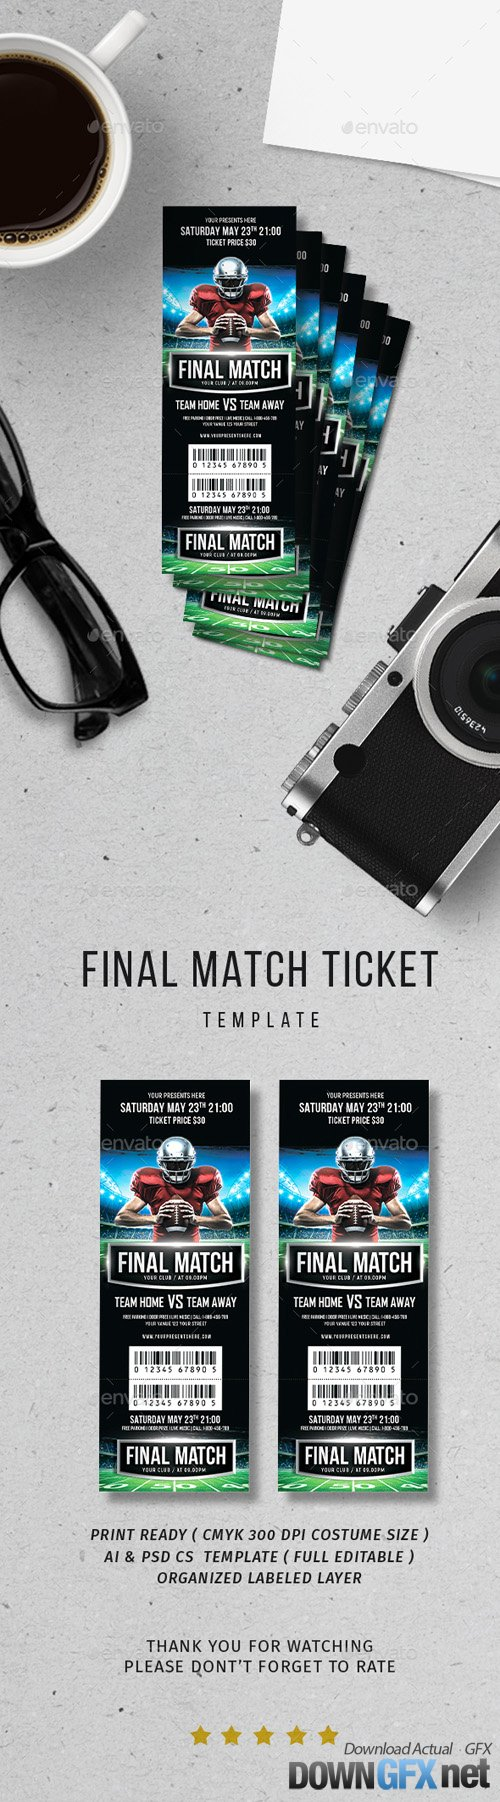 Final Match Ticket 20018891